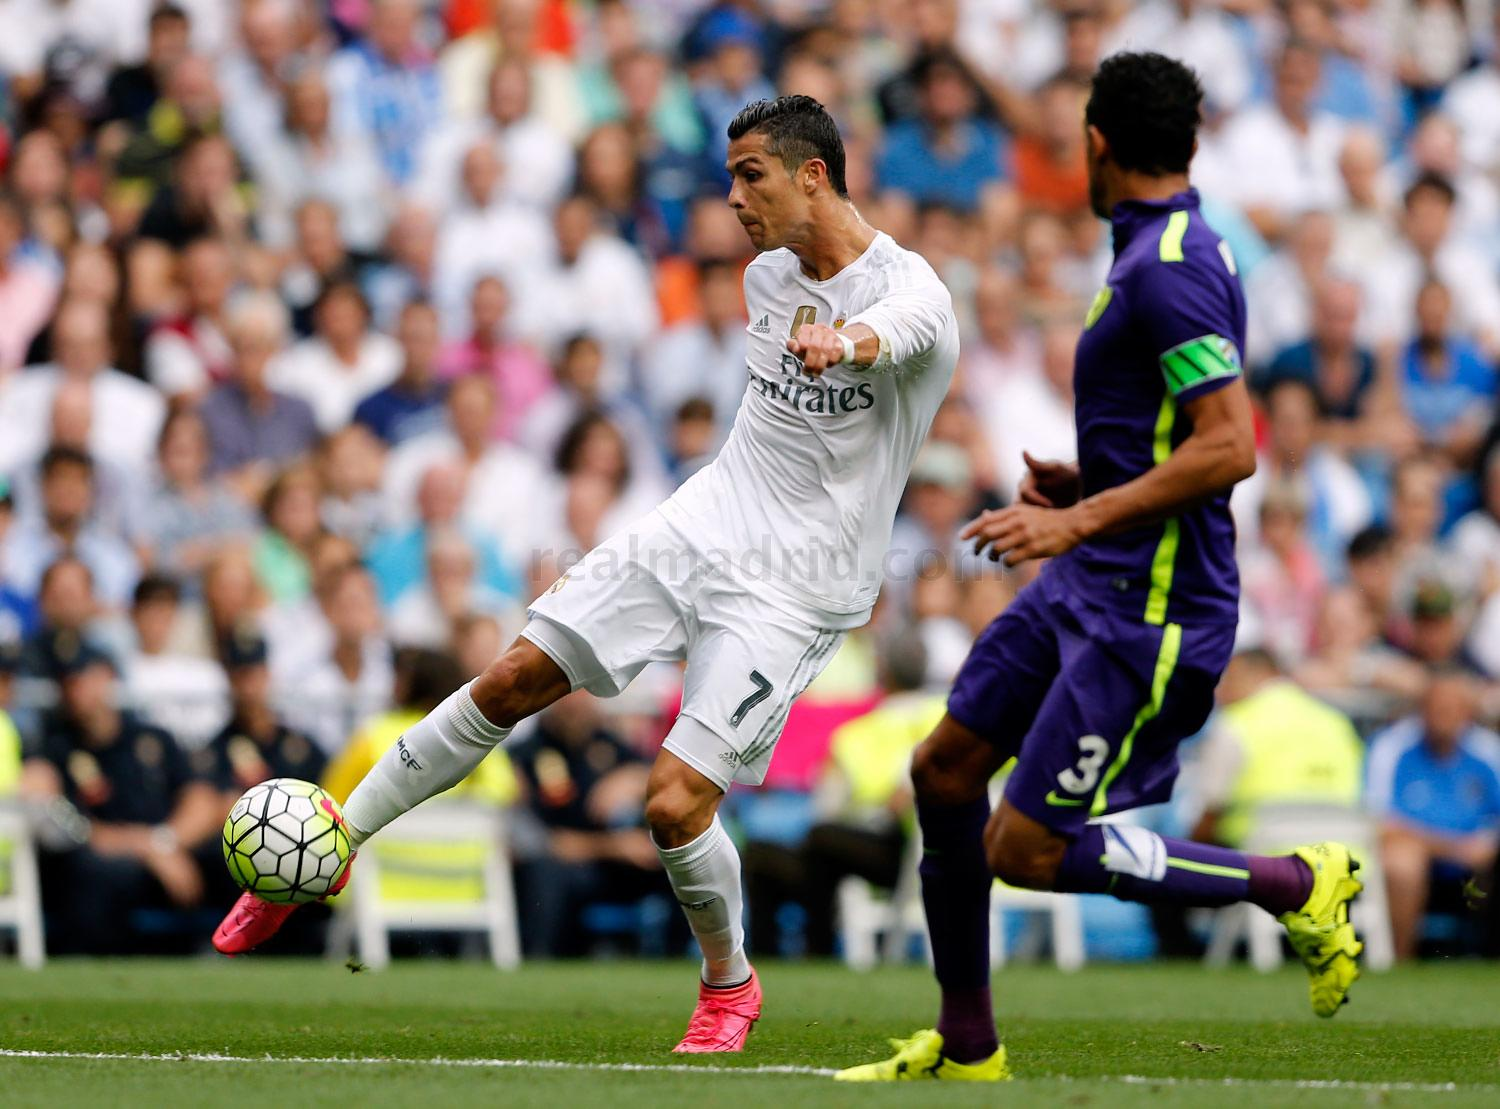 Real Madrid - Real Madrid - Málaga - 26-09-2015